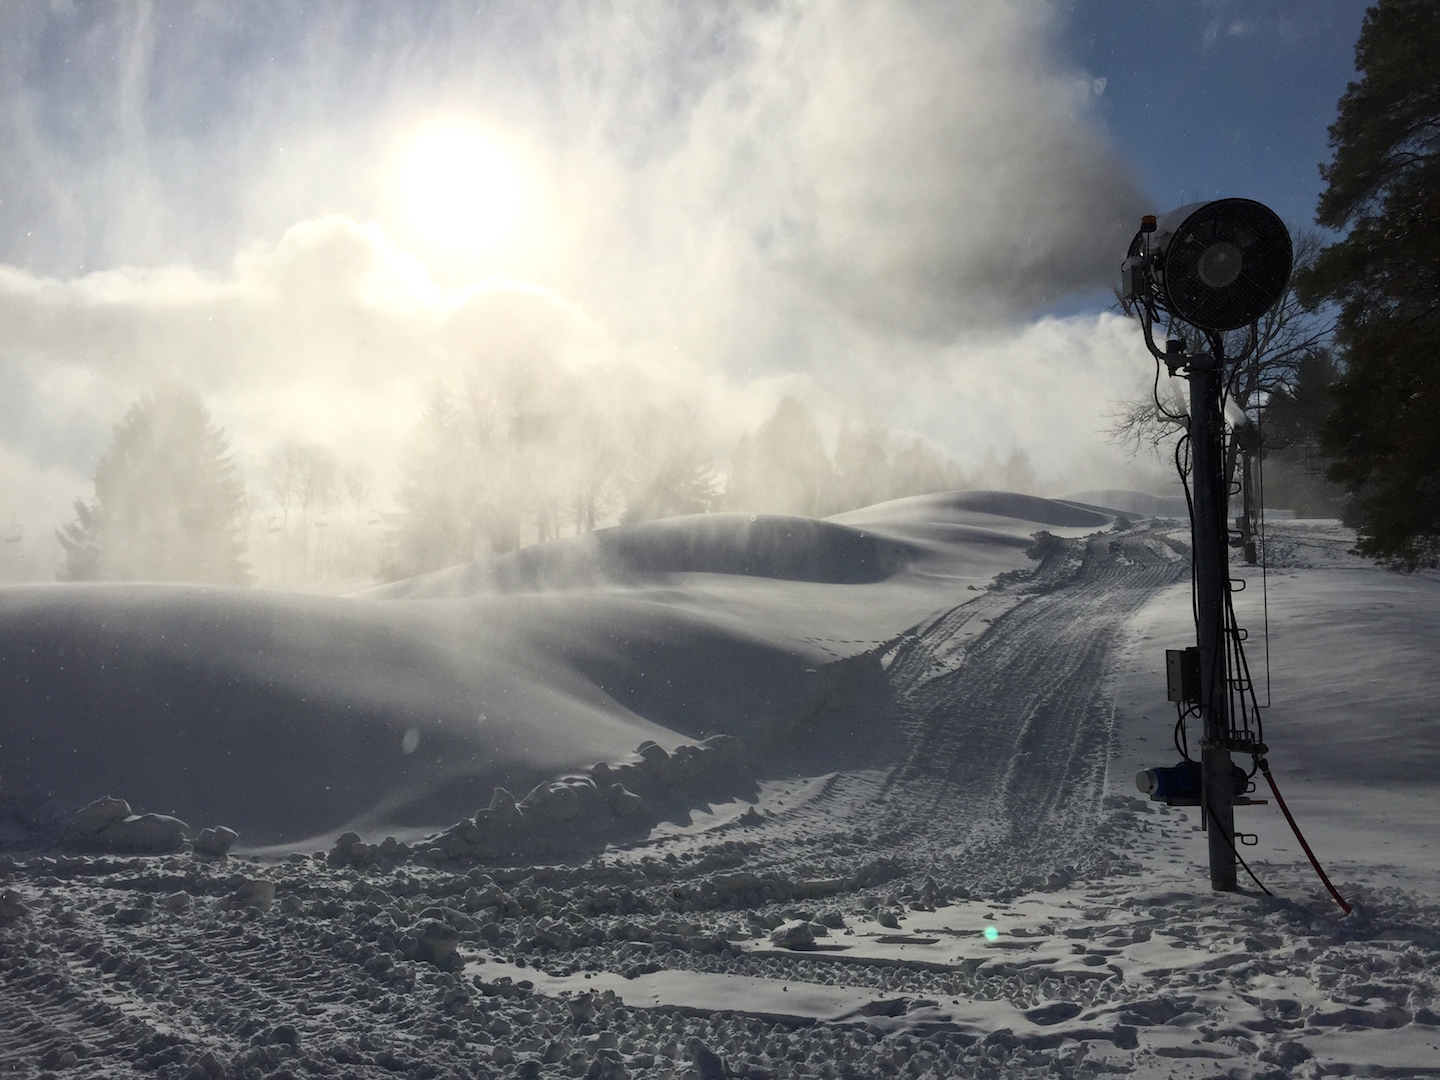 Early Season Snowmaking in November at Snow Trails